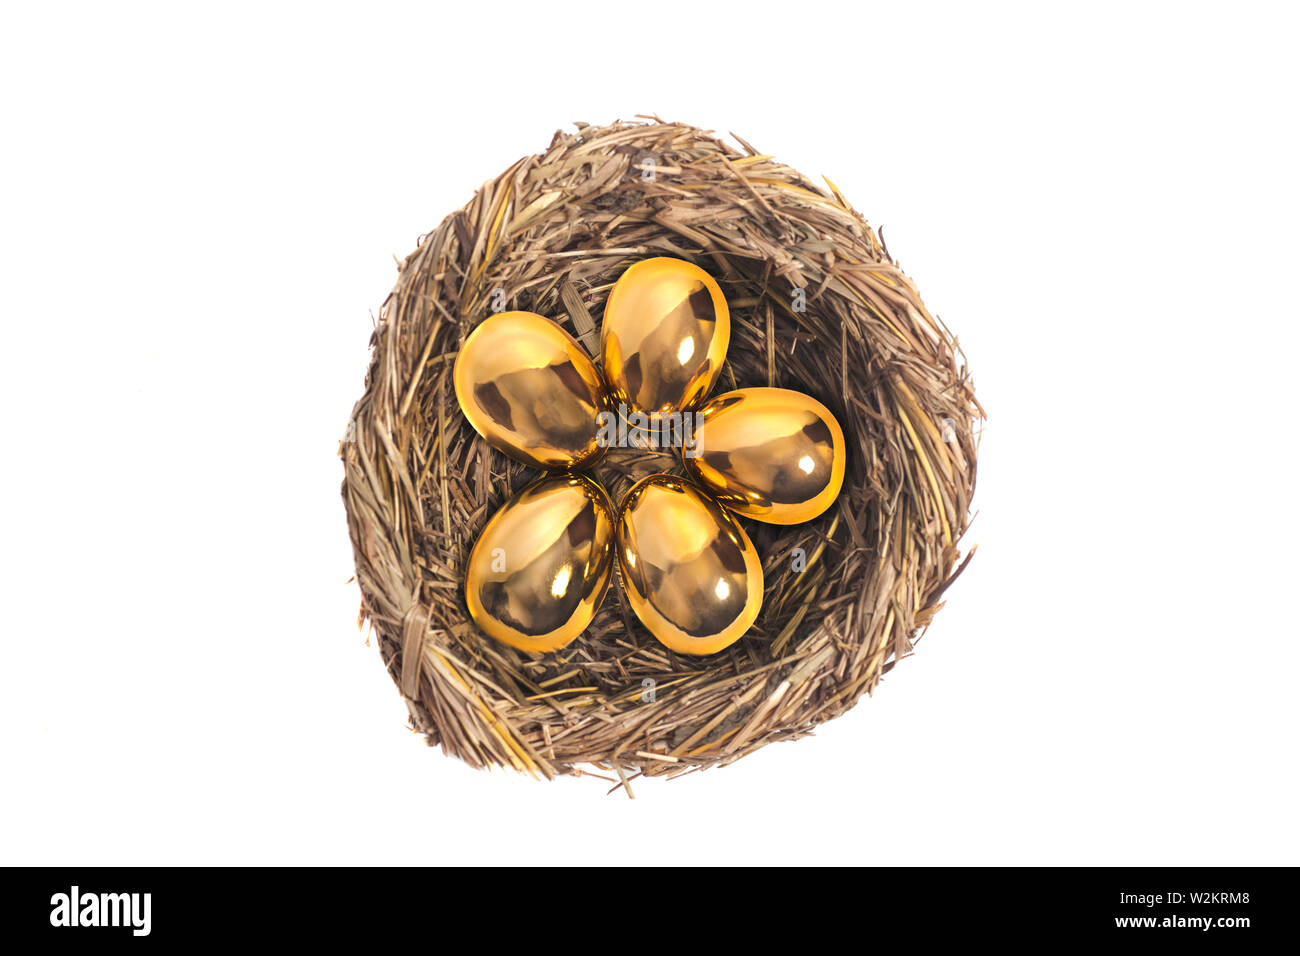 Golden eggs in bird nest on white - Stock Image